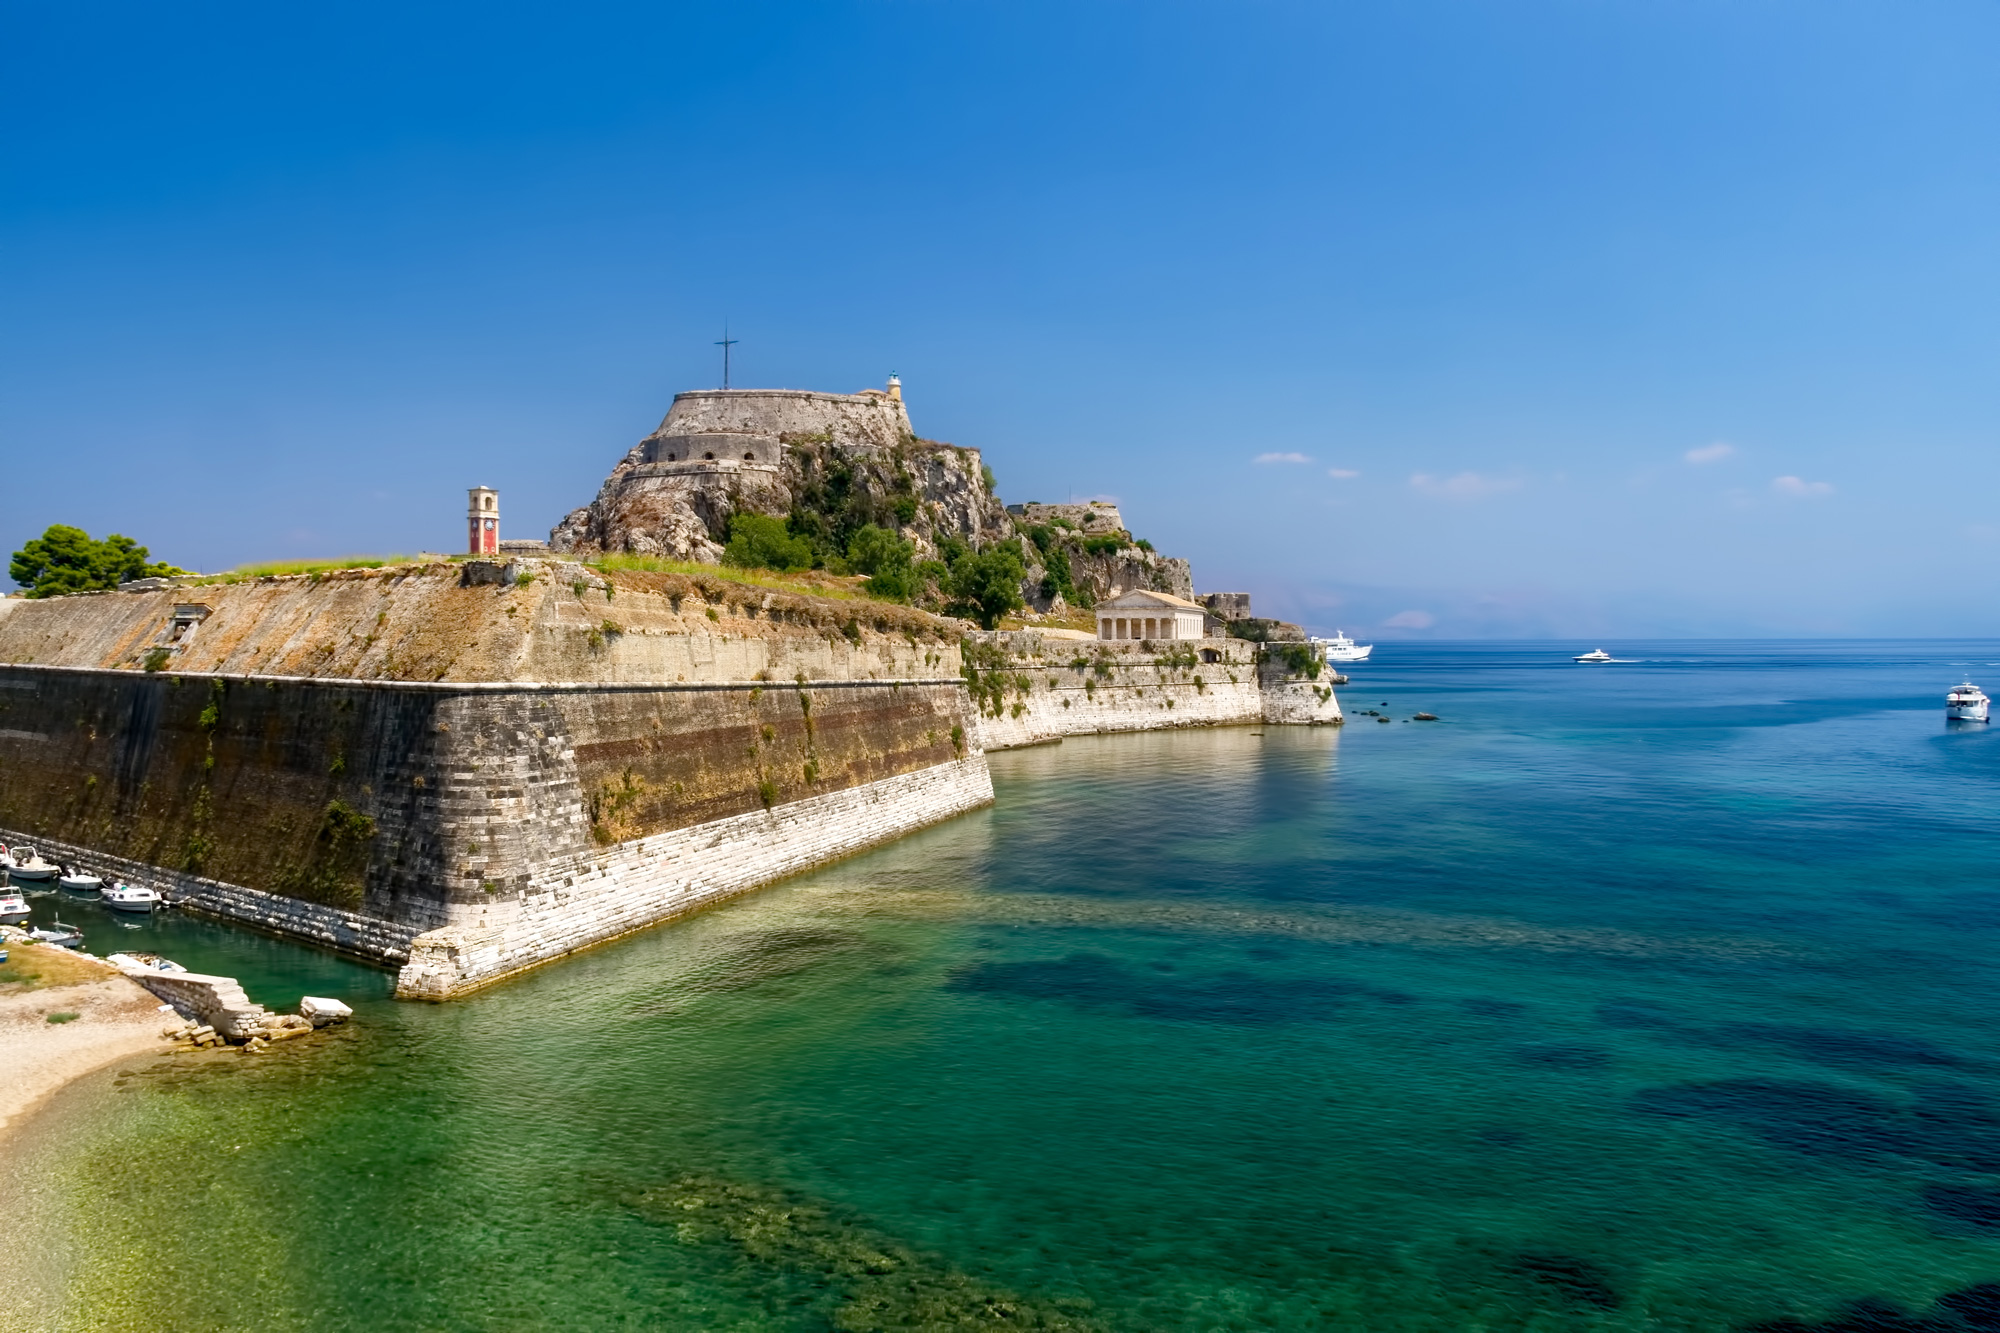 Old-Fortress-Corfu Greece image by Mike Andrew Photography